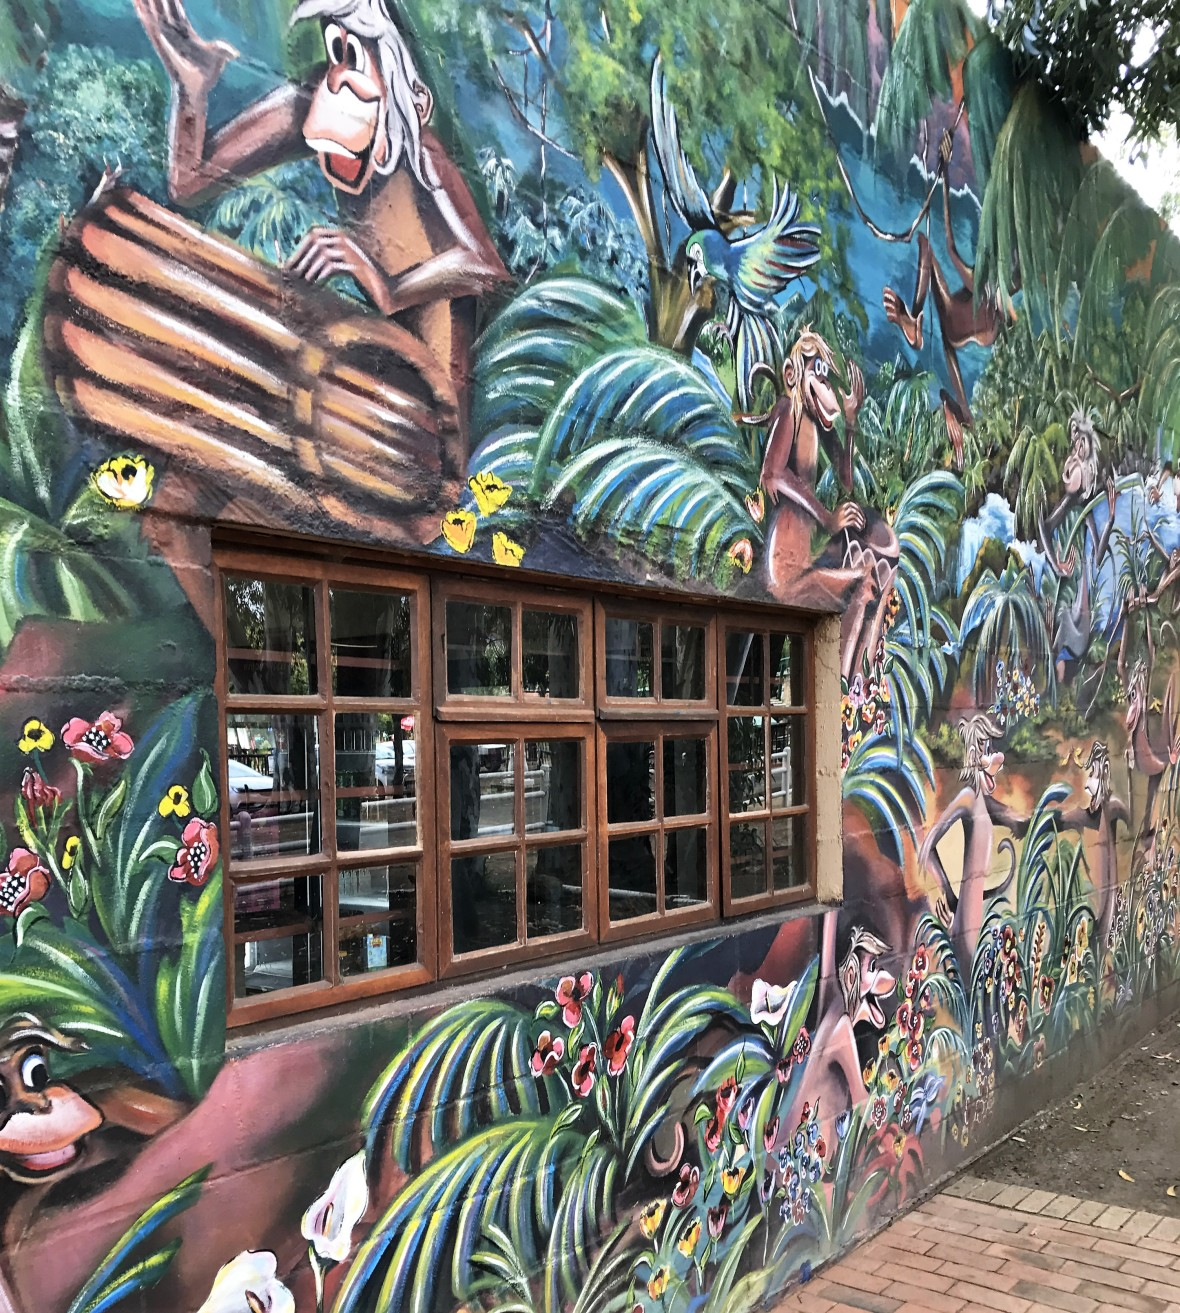 mural-monkey-town-cape-town-south-africa